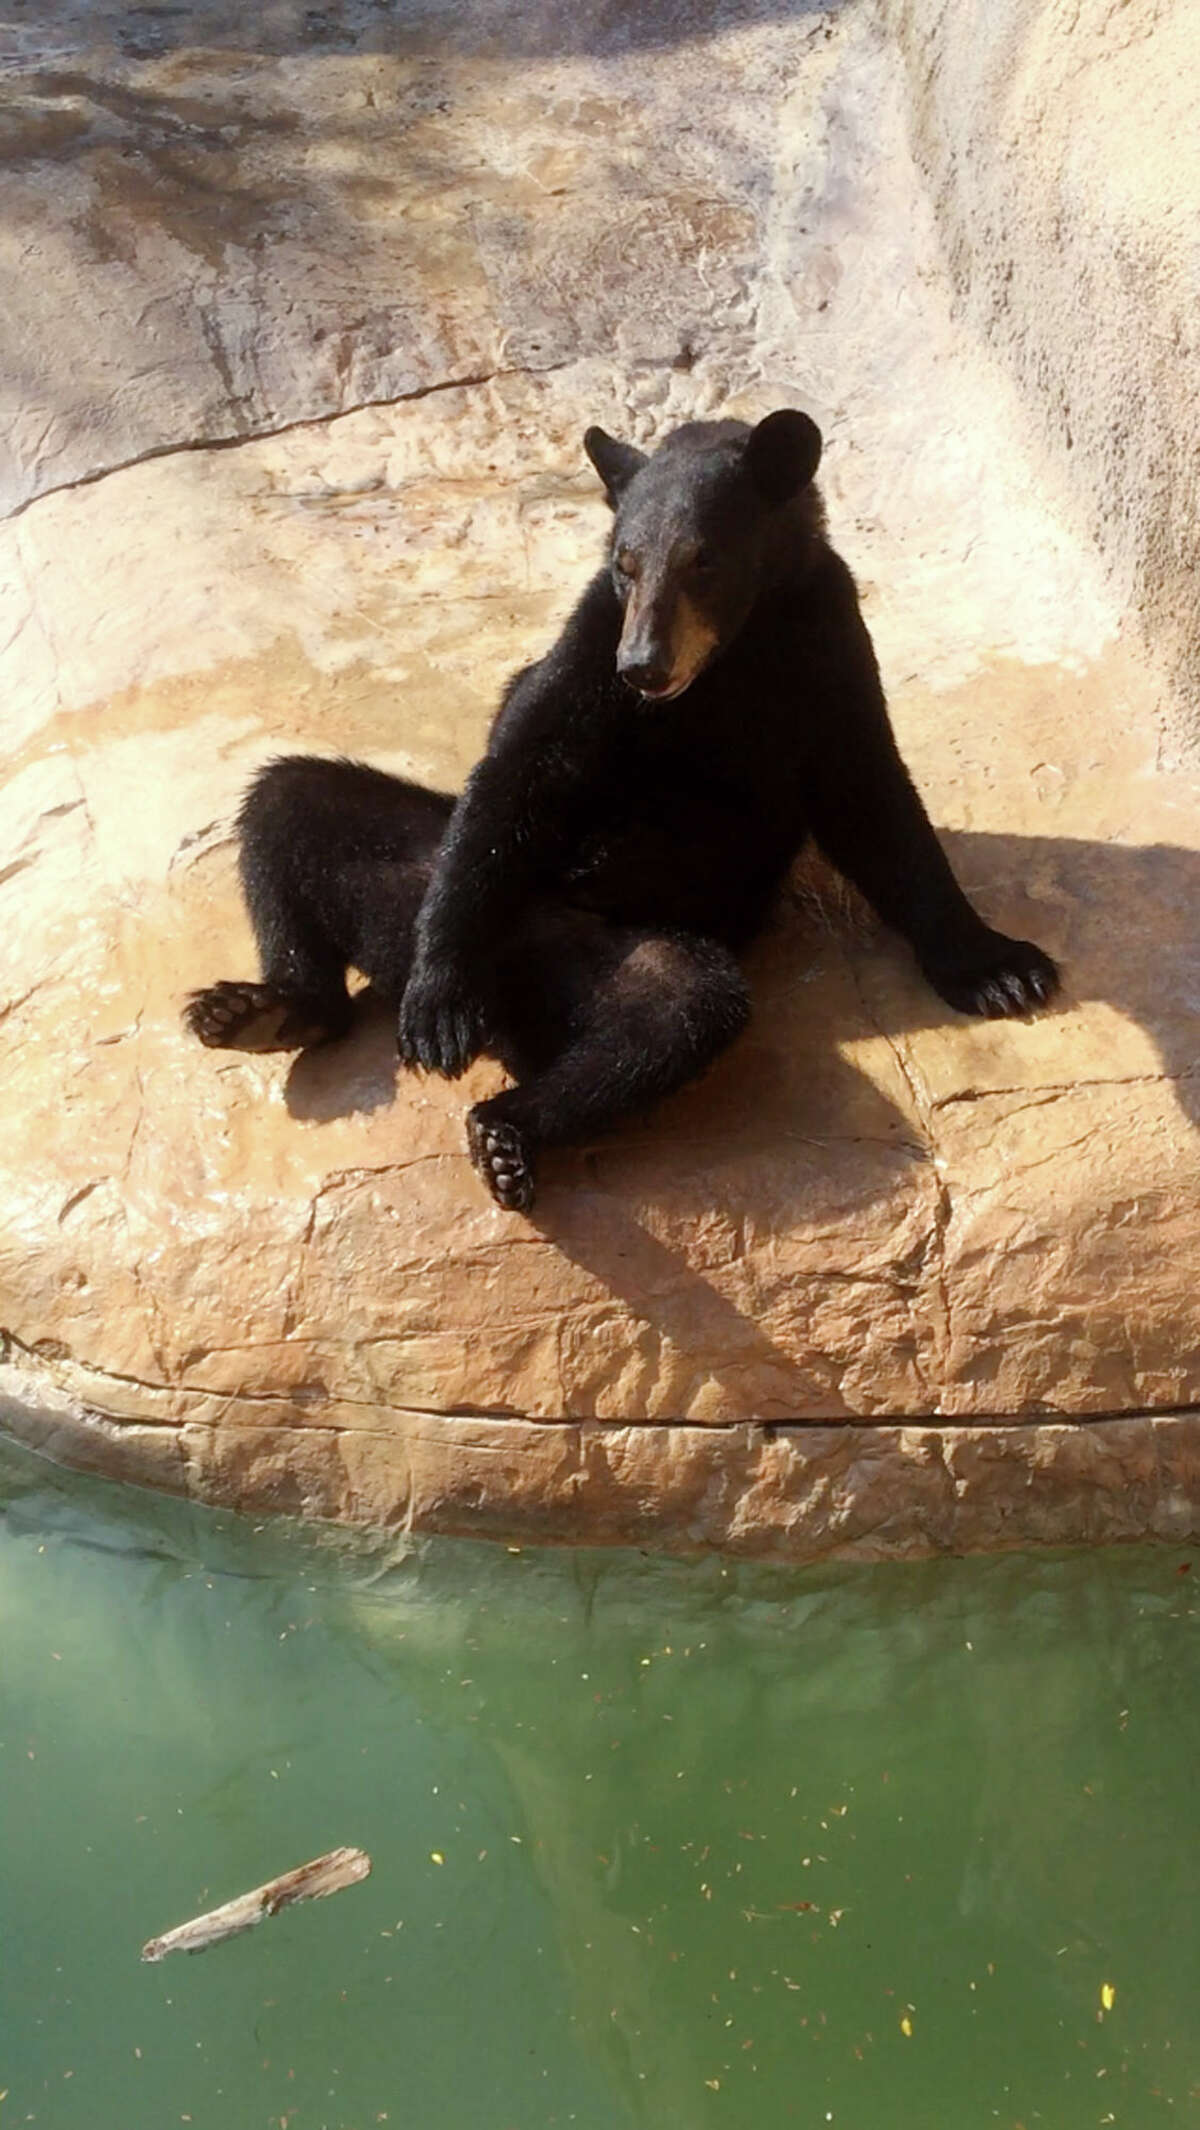 August 2014: A bear named Oscar at the Gladys Porter Zoo in Brownsville had a 15-minute taste of freedom when he climbed the concrete wall of his enclosure.